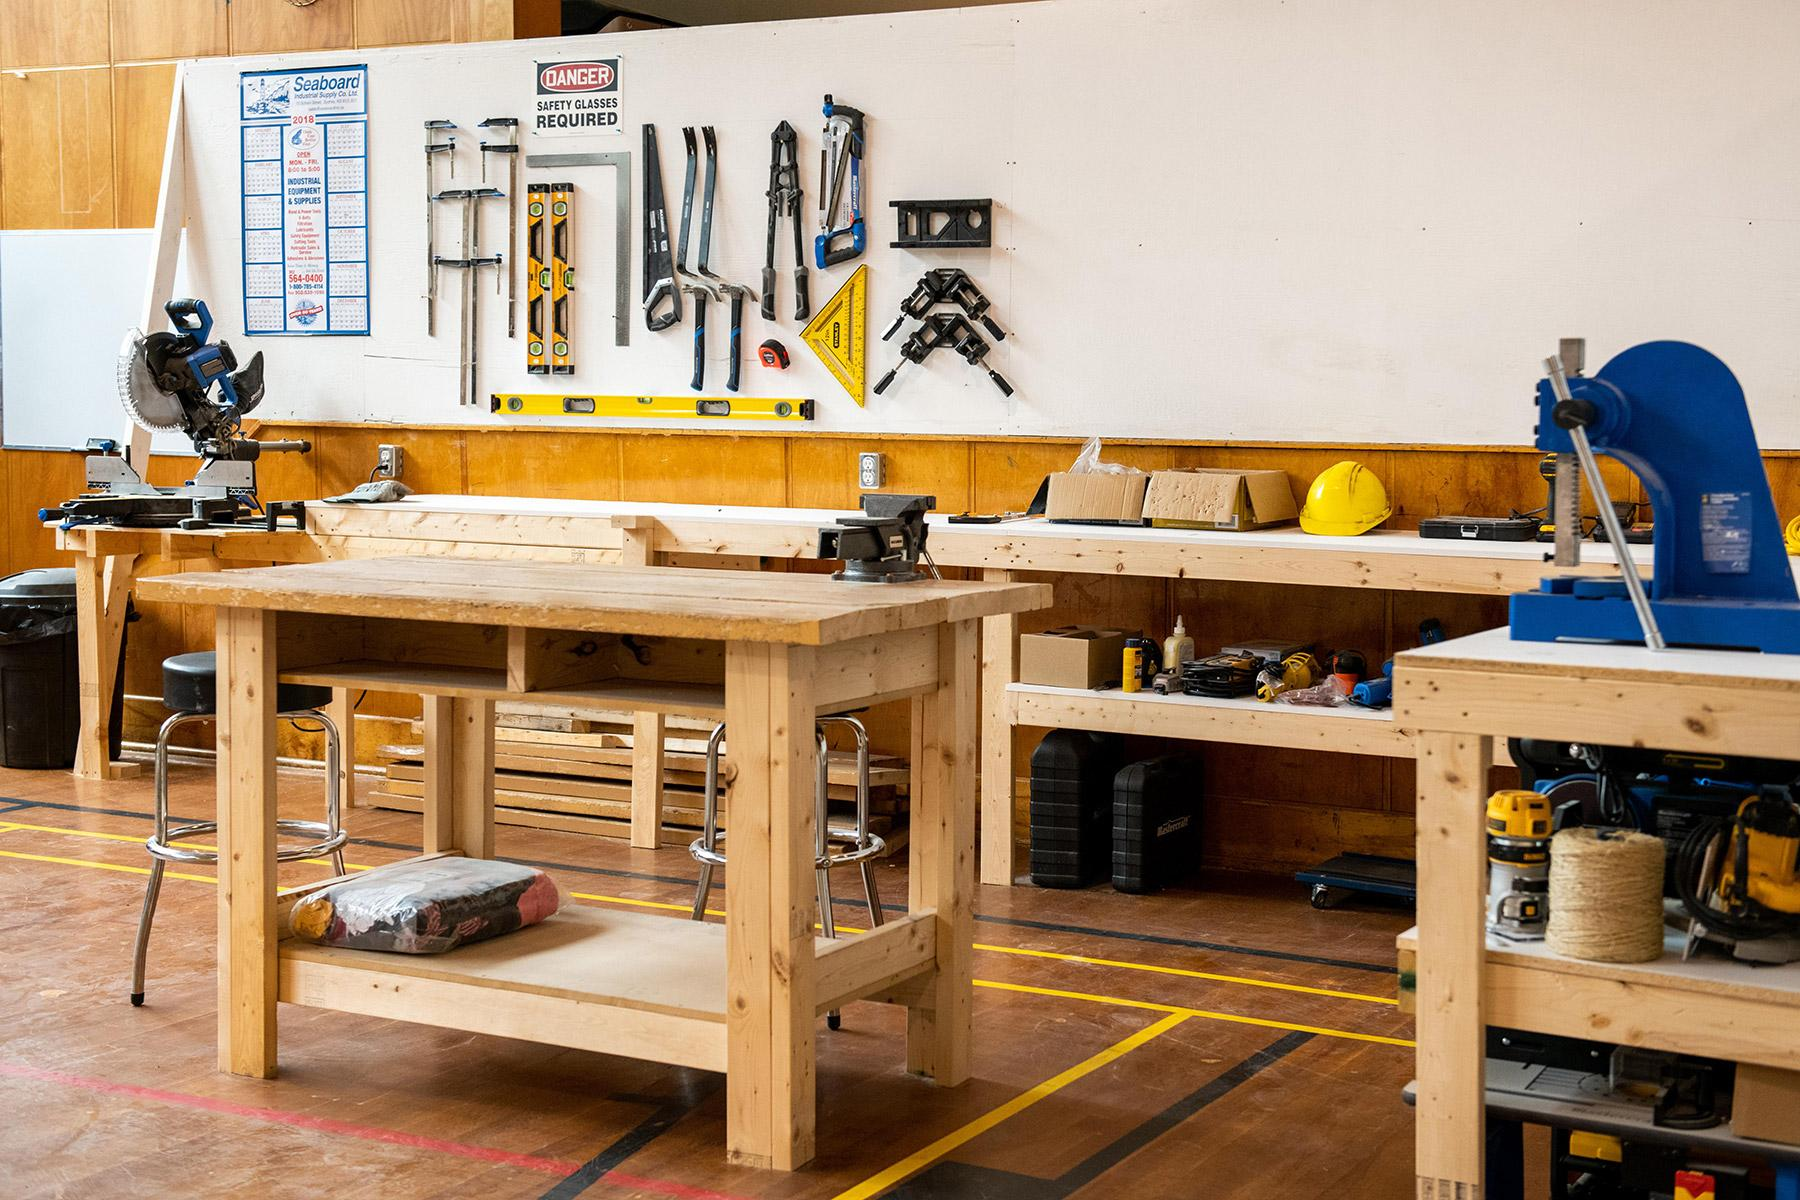 A workshop with tools and big wooden counters.